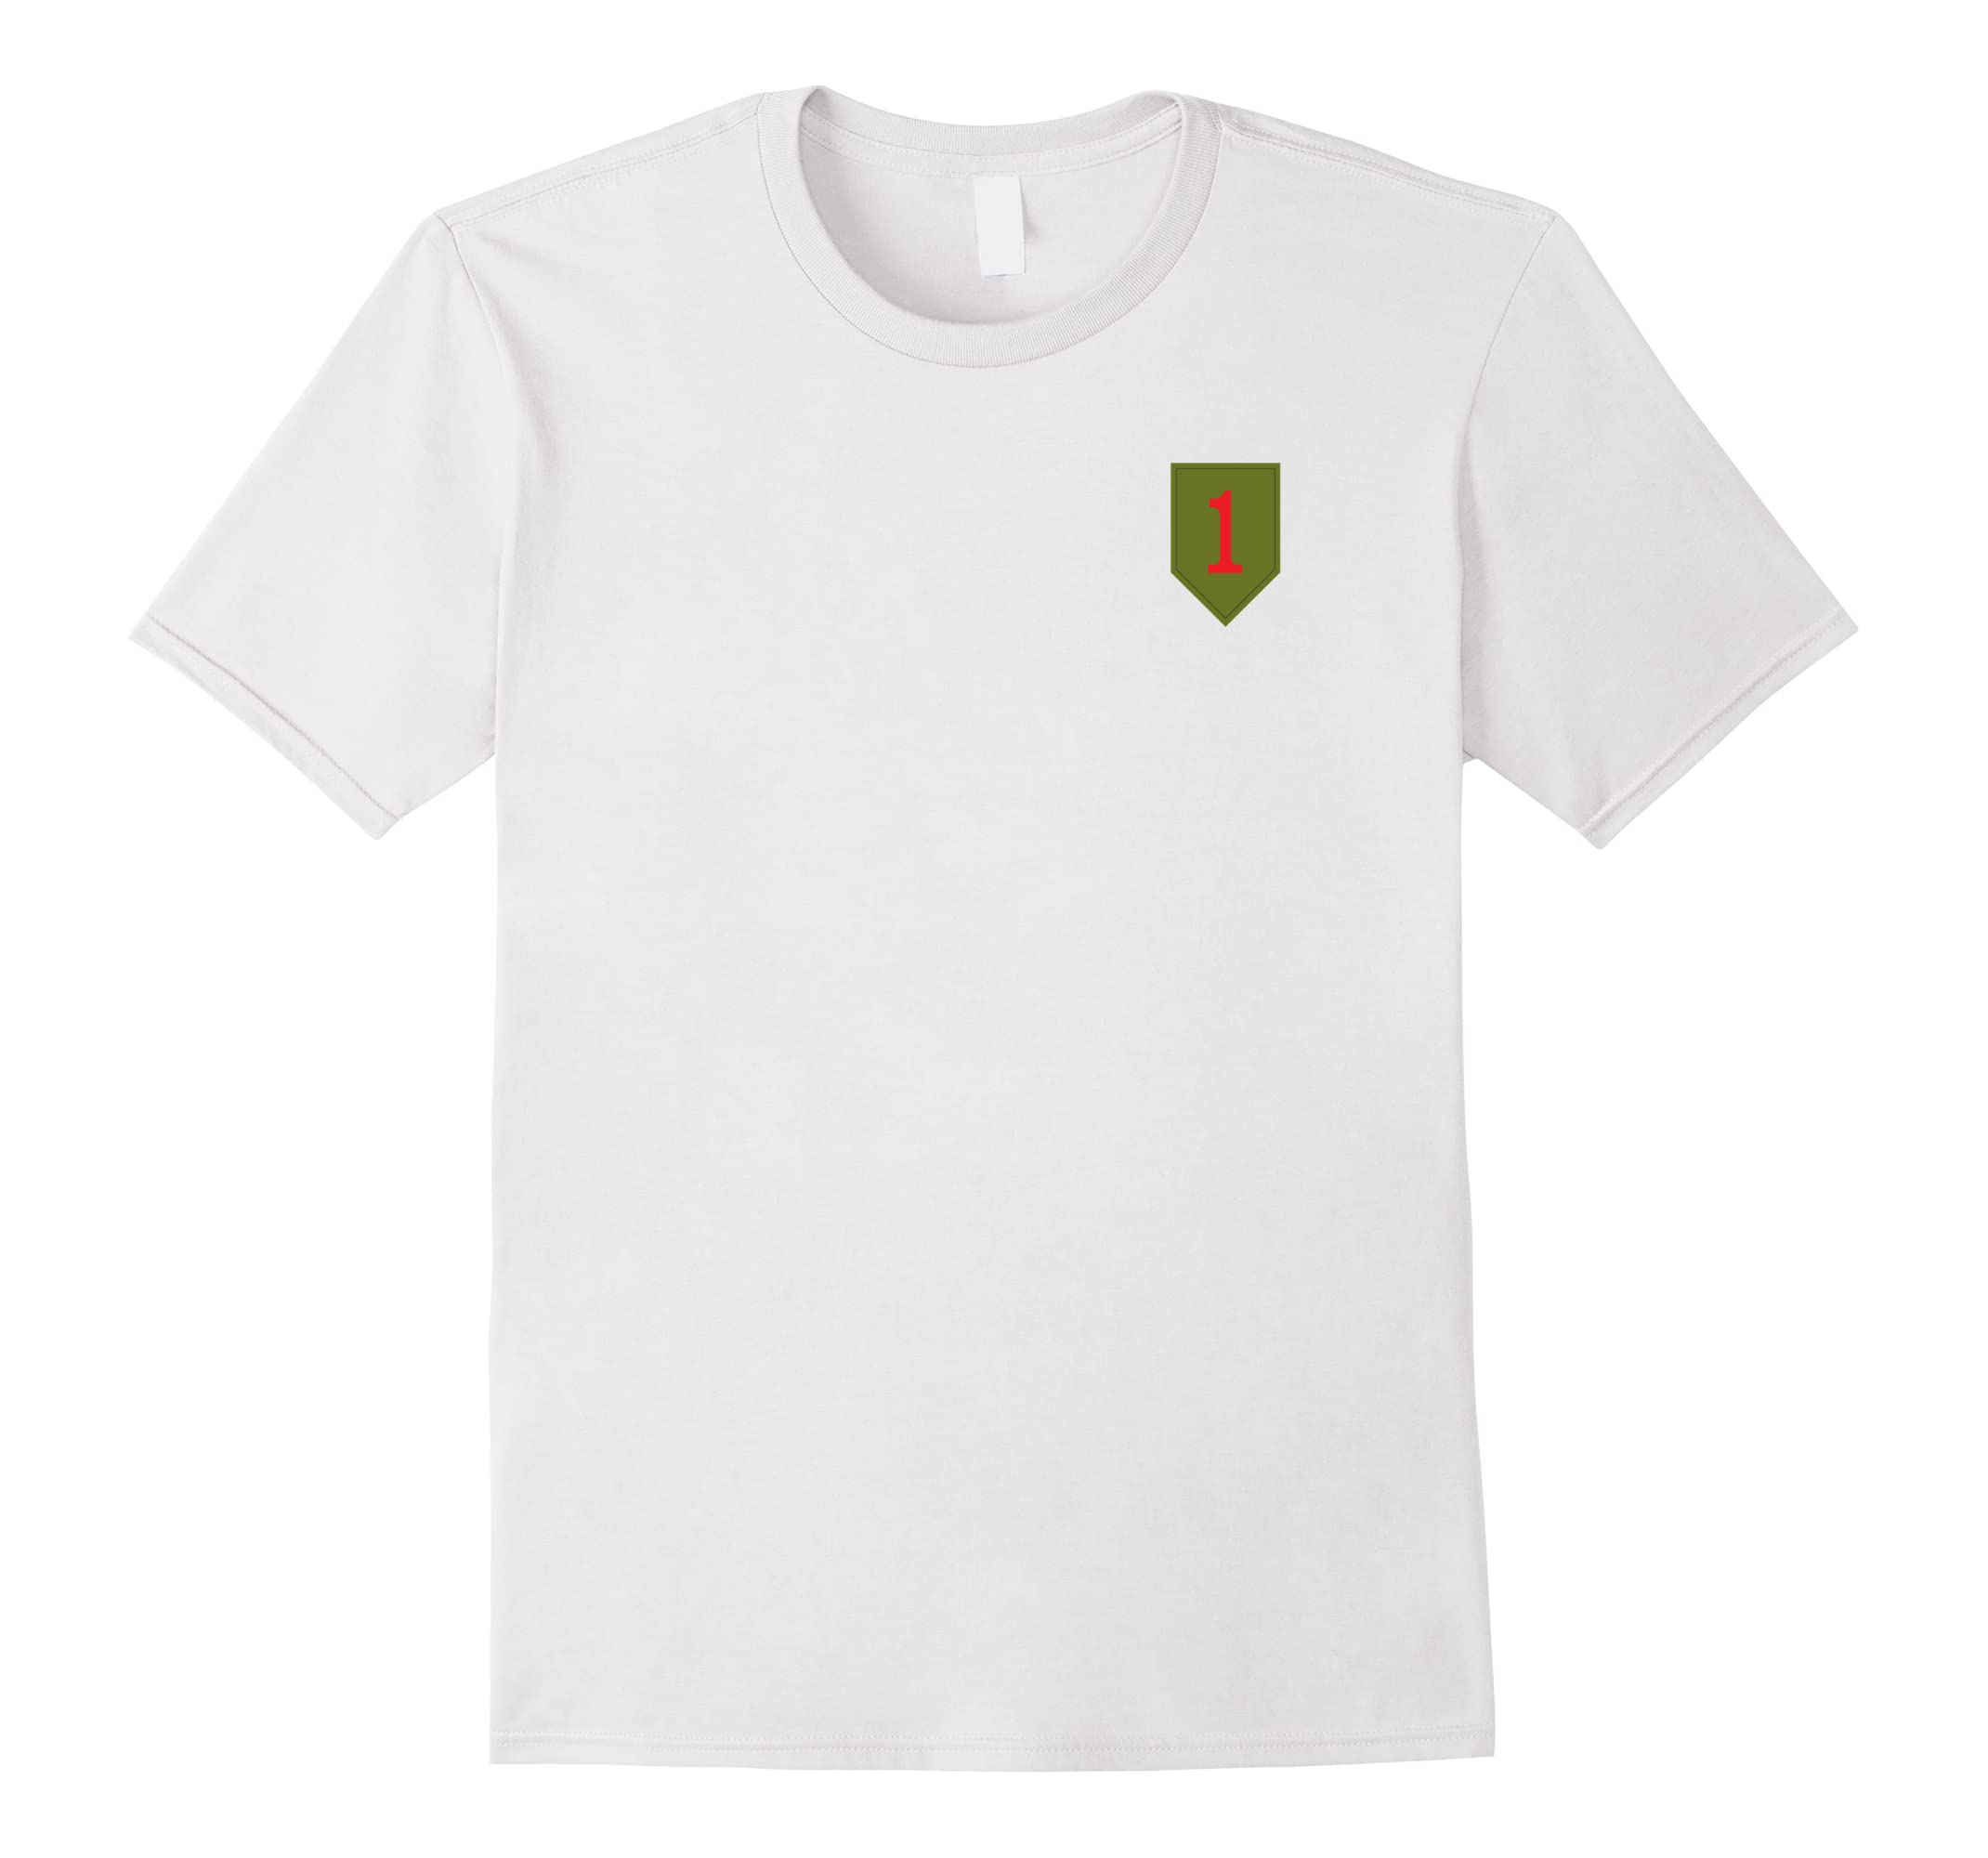 d2120e0c Big Red One / 1st Infantry Division T-Shirt-ah my shirt one gift ...